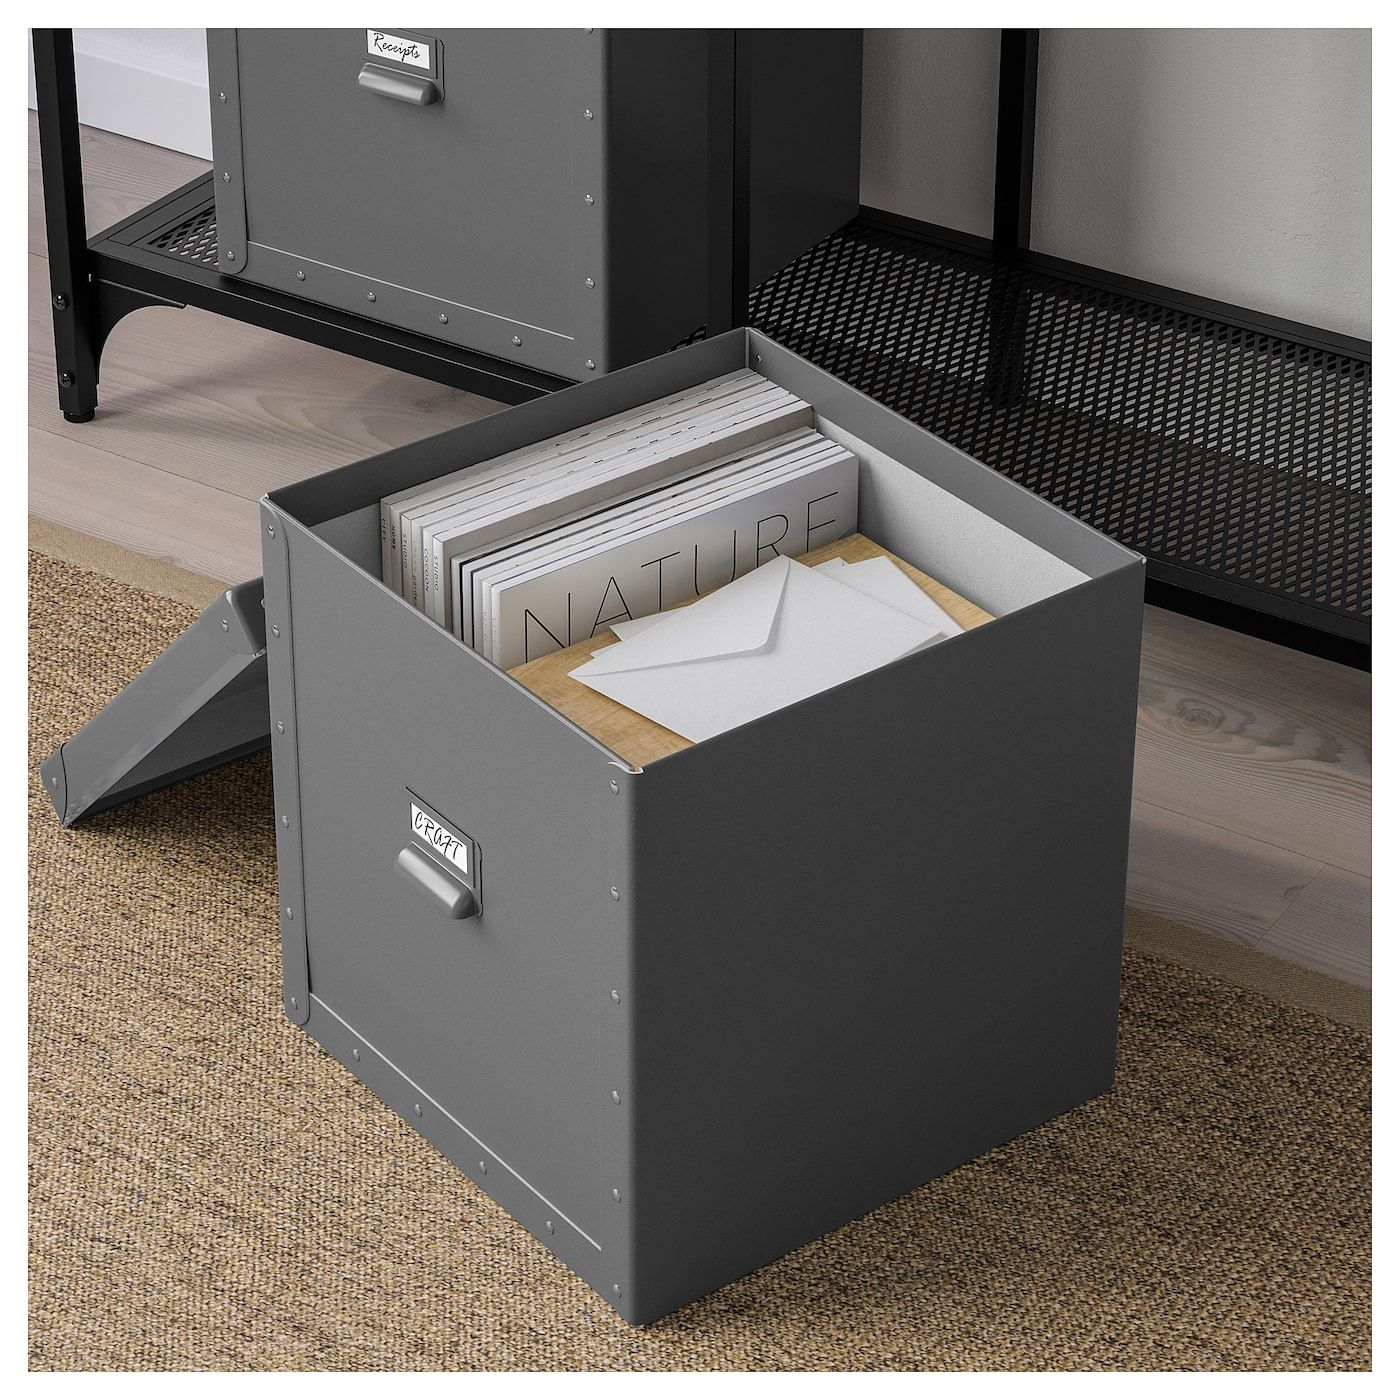 Fjalla Storage Box With Lid Dark Gray 11 X12 X11 Ikea In 2020 Storage Boxes With Lids Storage Bins With Lids Grey Storage